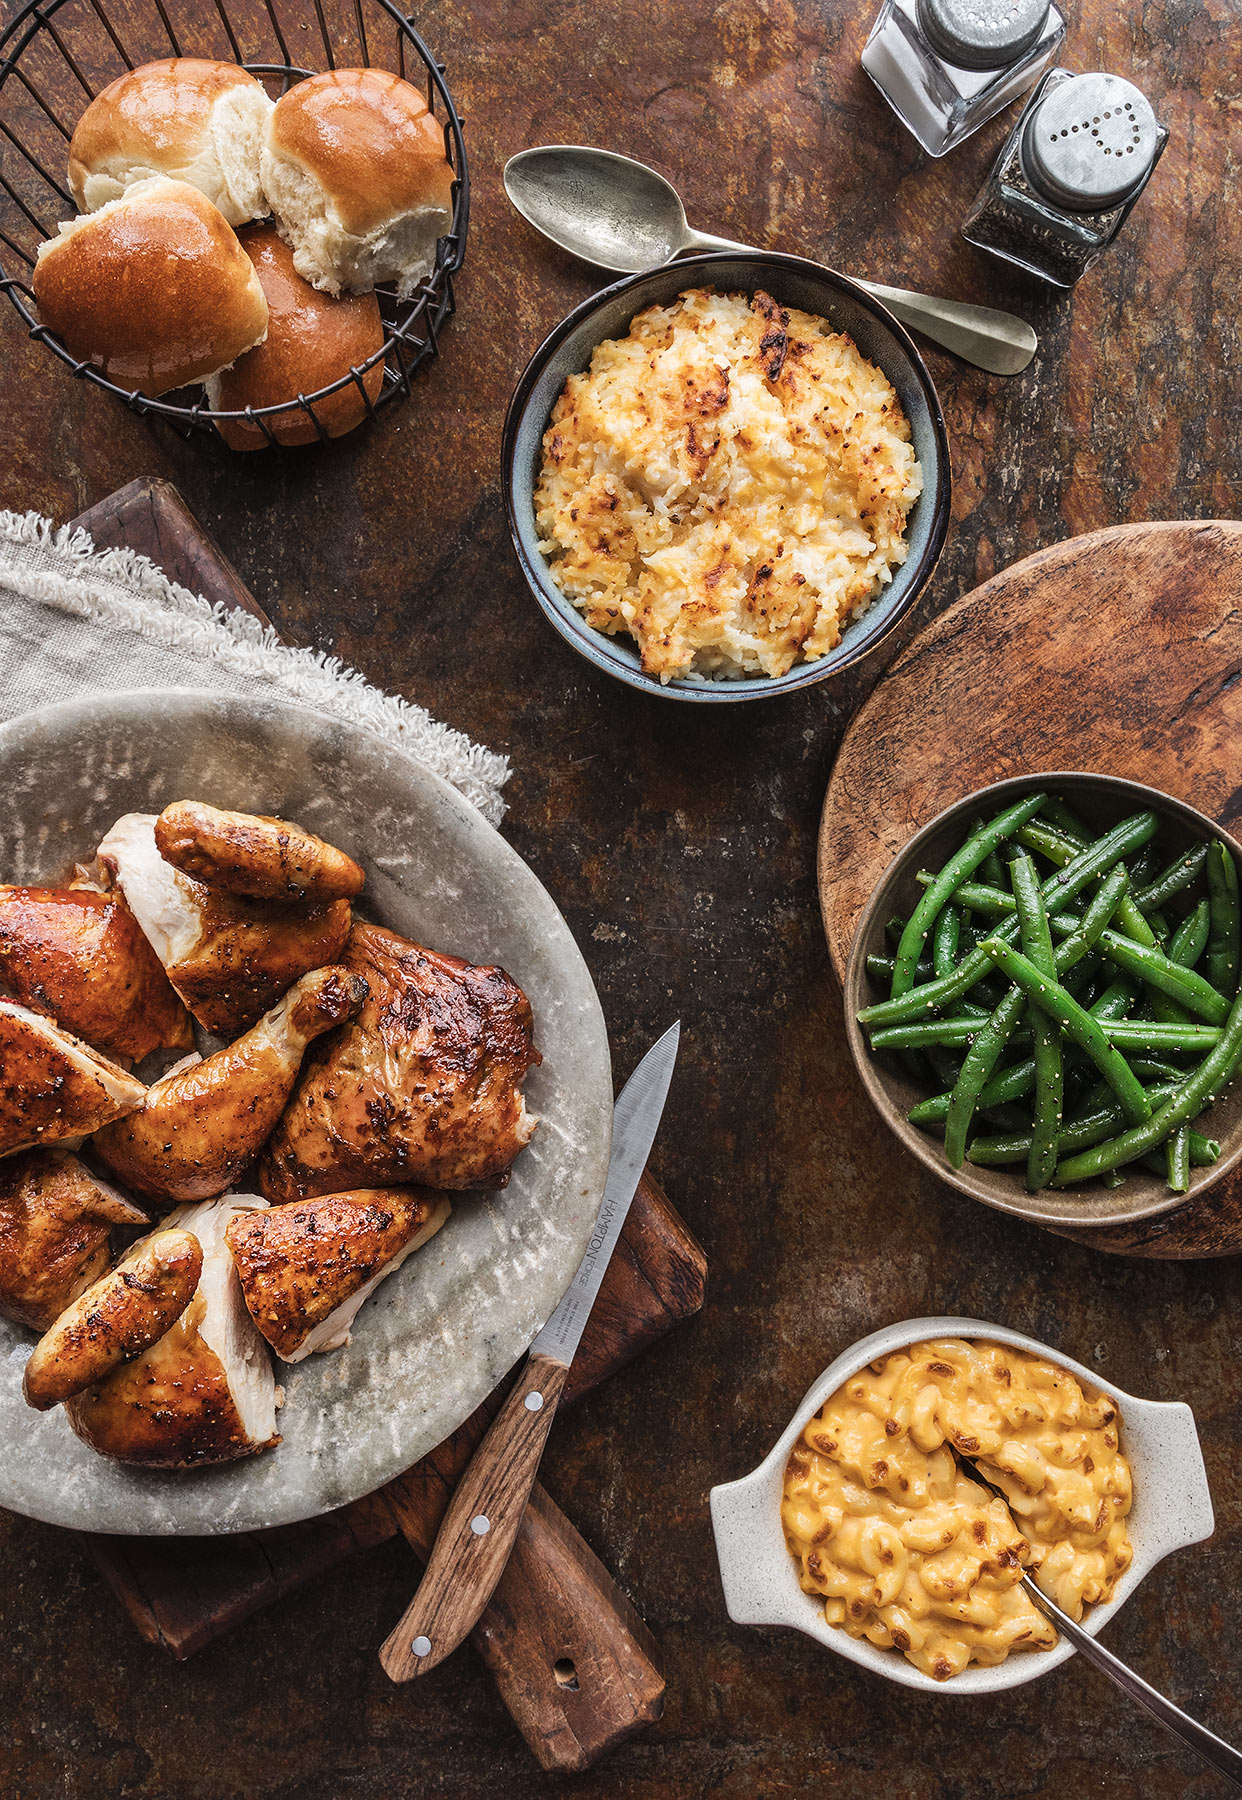 Family dinner. Rotisserie chicken, potato, green beans, mac & cheese